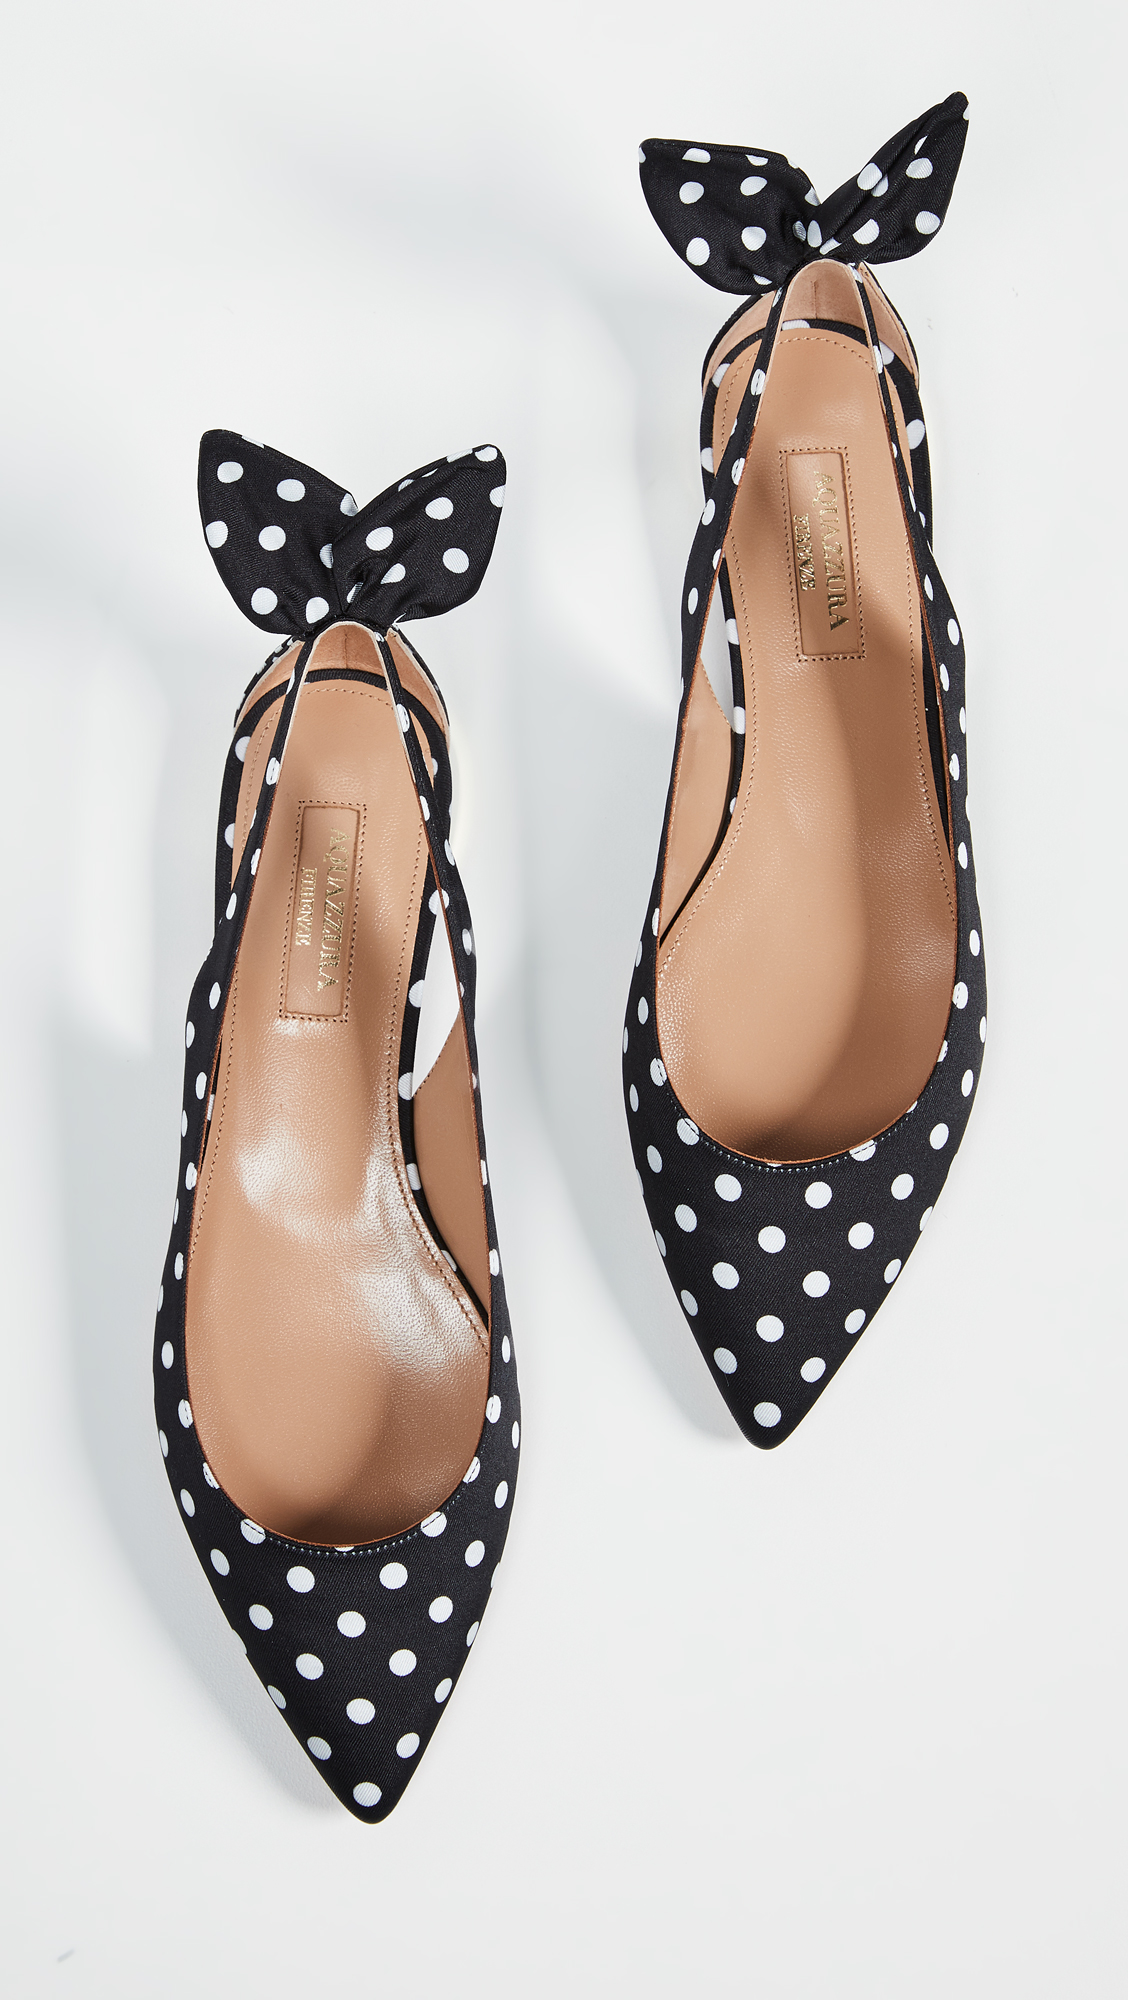 Black and White Polka Dot Flats